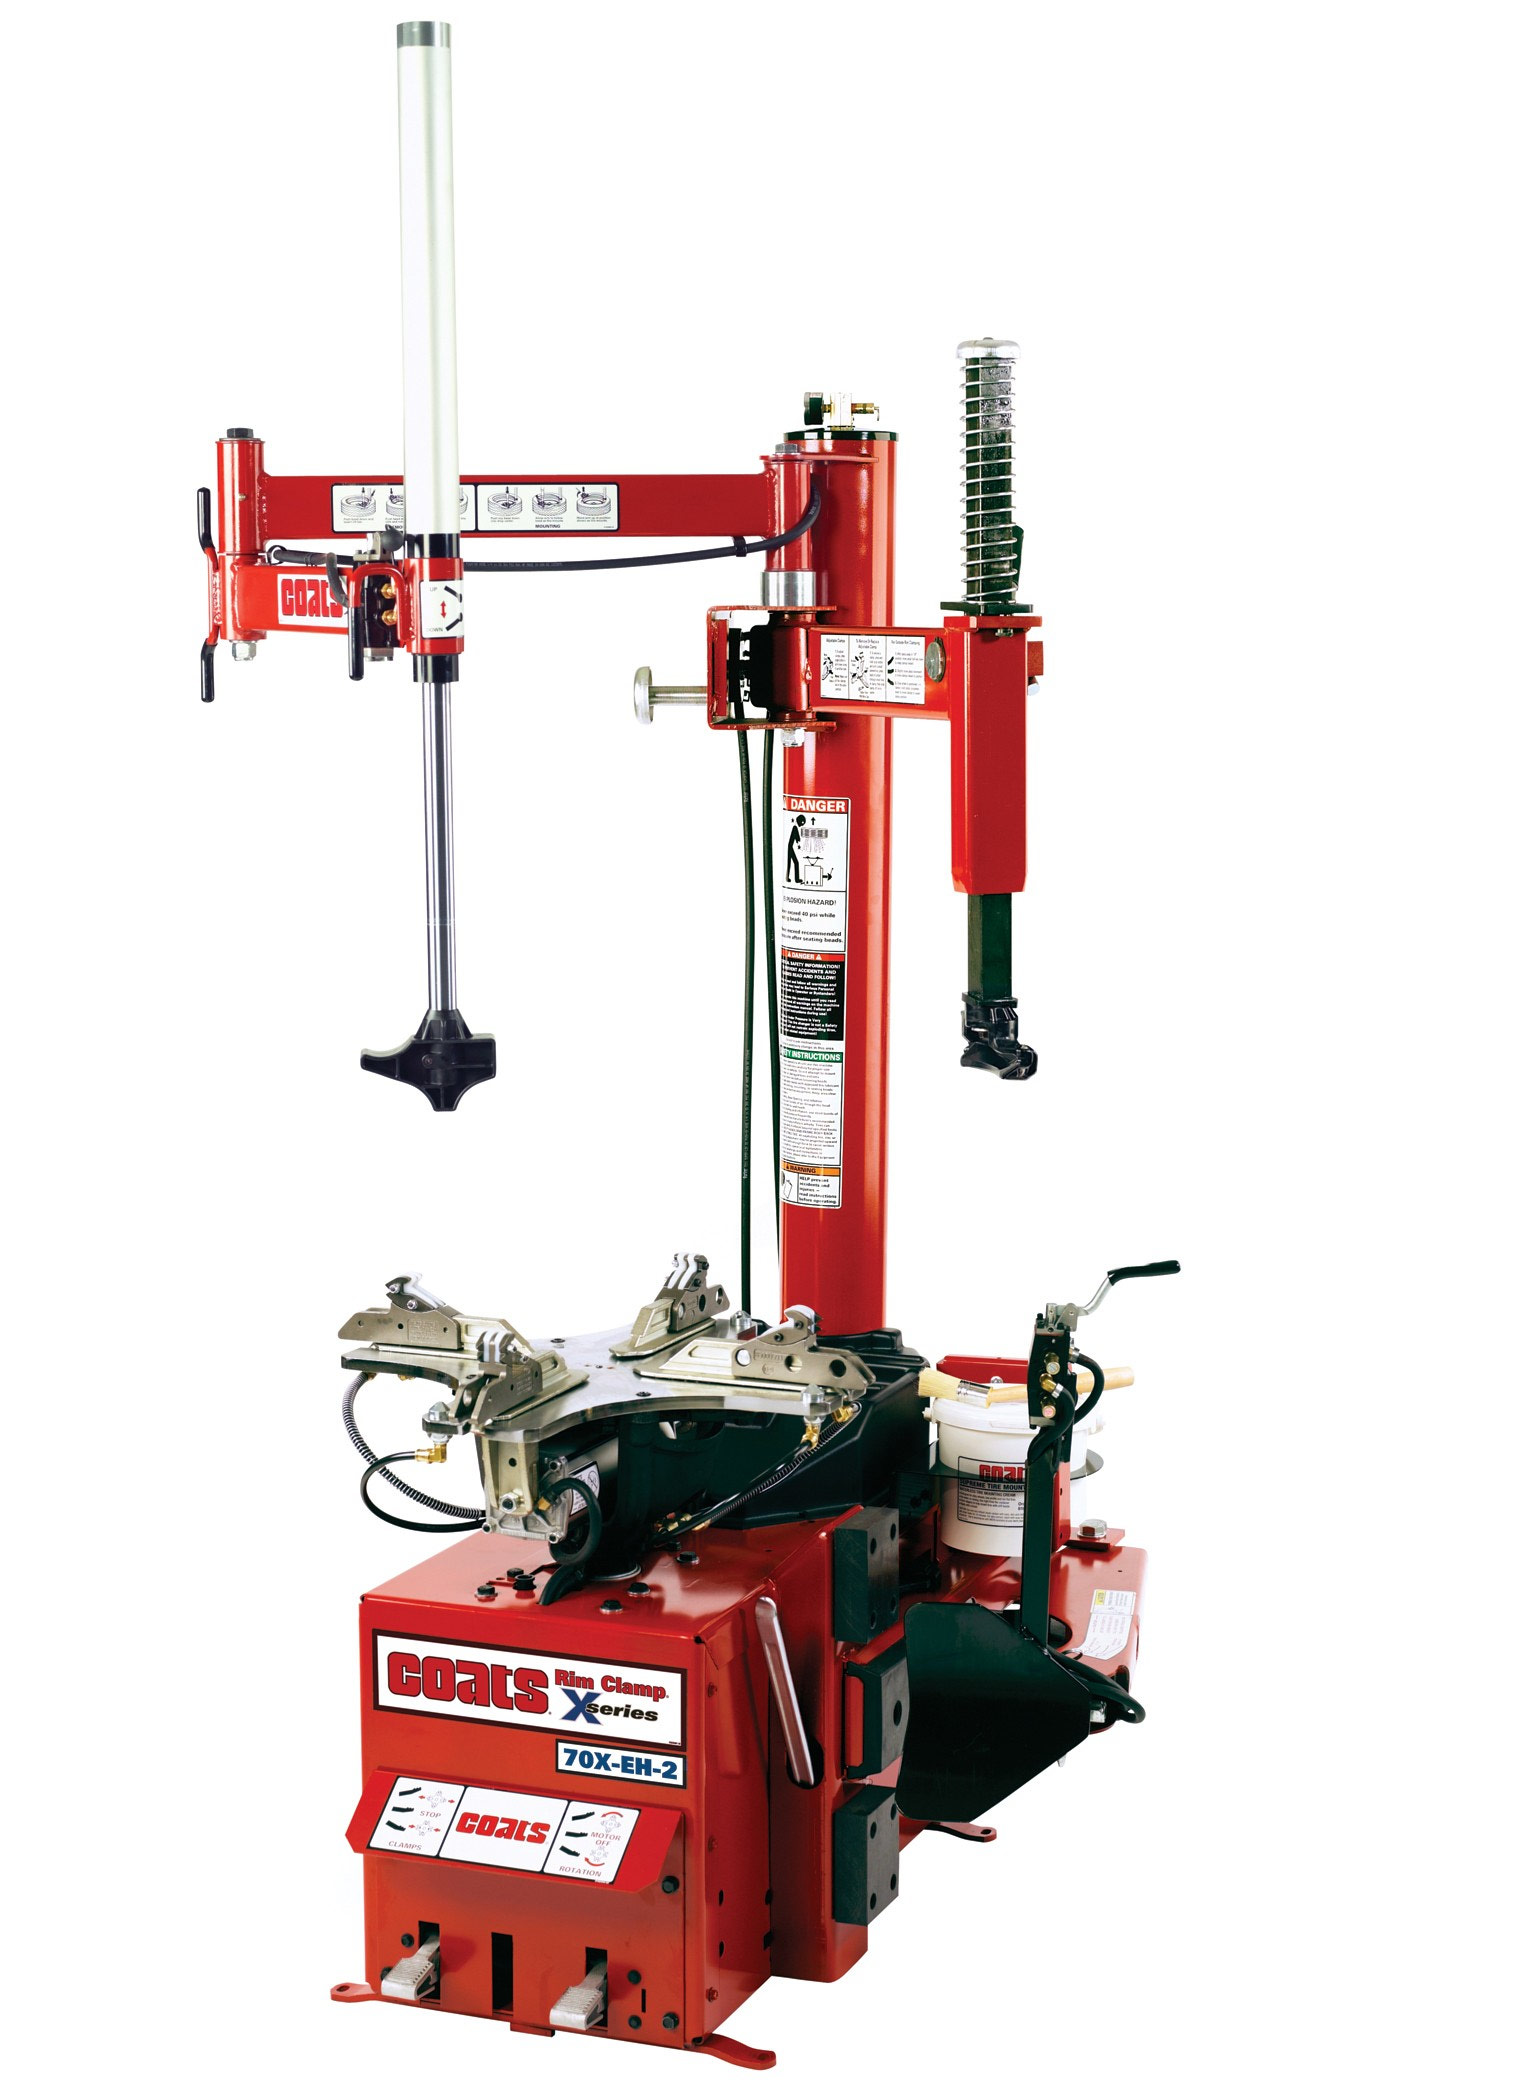 Tire fitting machines: types, description, instructions. Equipment for service stations 89